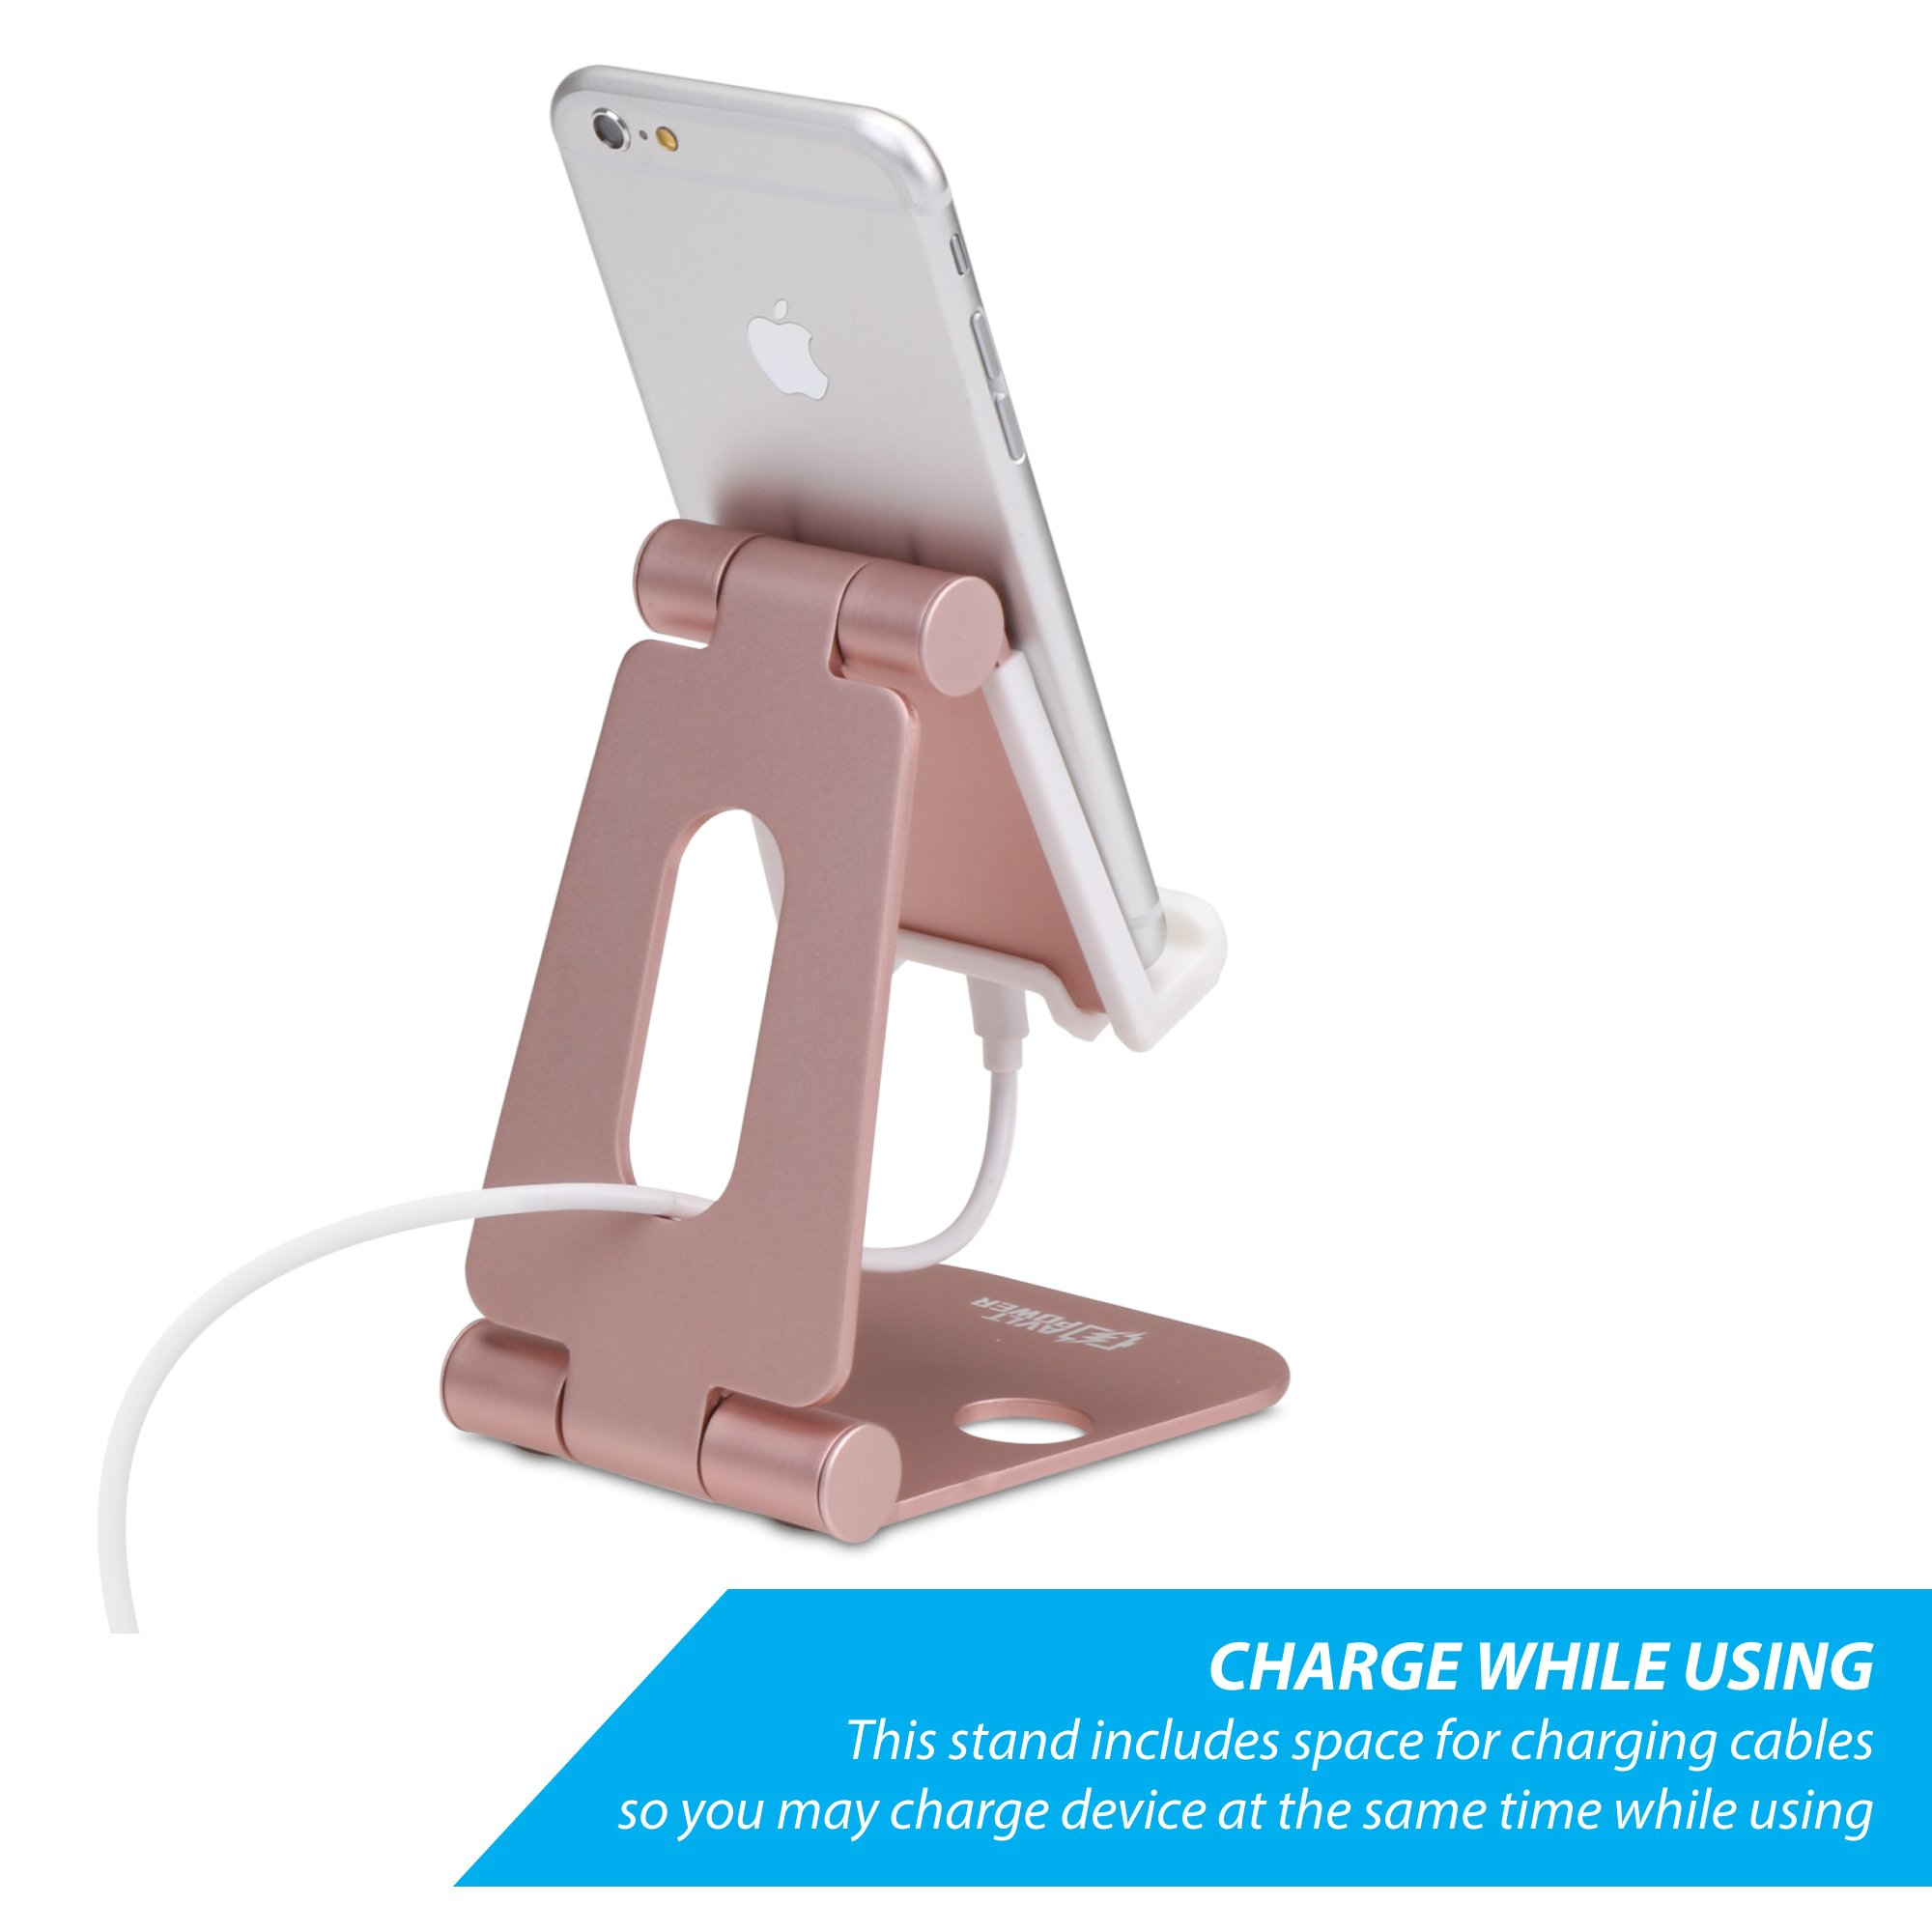 Sturdy Aluminum Phone Stand, AVLT-Power Foldable Multi Angle Phone and Tablet Holder- Portable & Adjustable Stand for Nintendo Switch, iPhone 7 6 Plus 5 5c, iPad & More by AVLT-Power (Image #7)